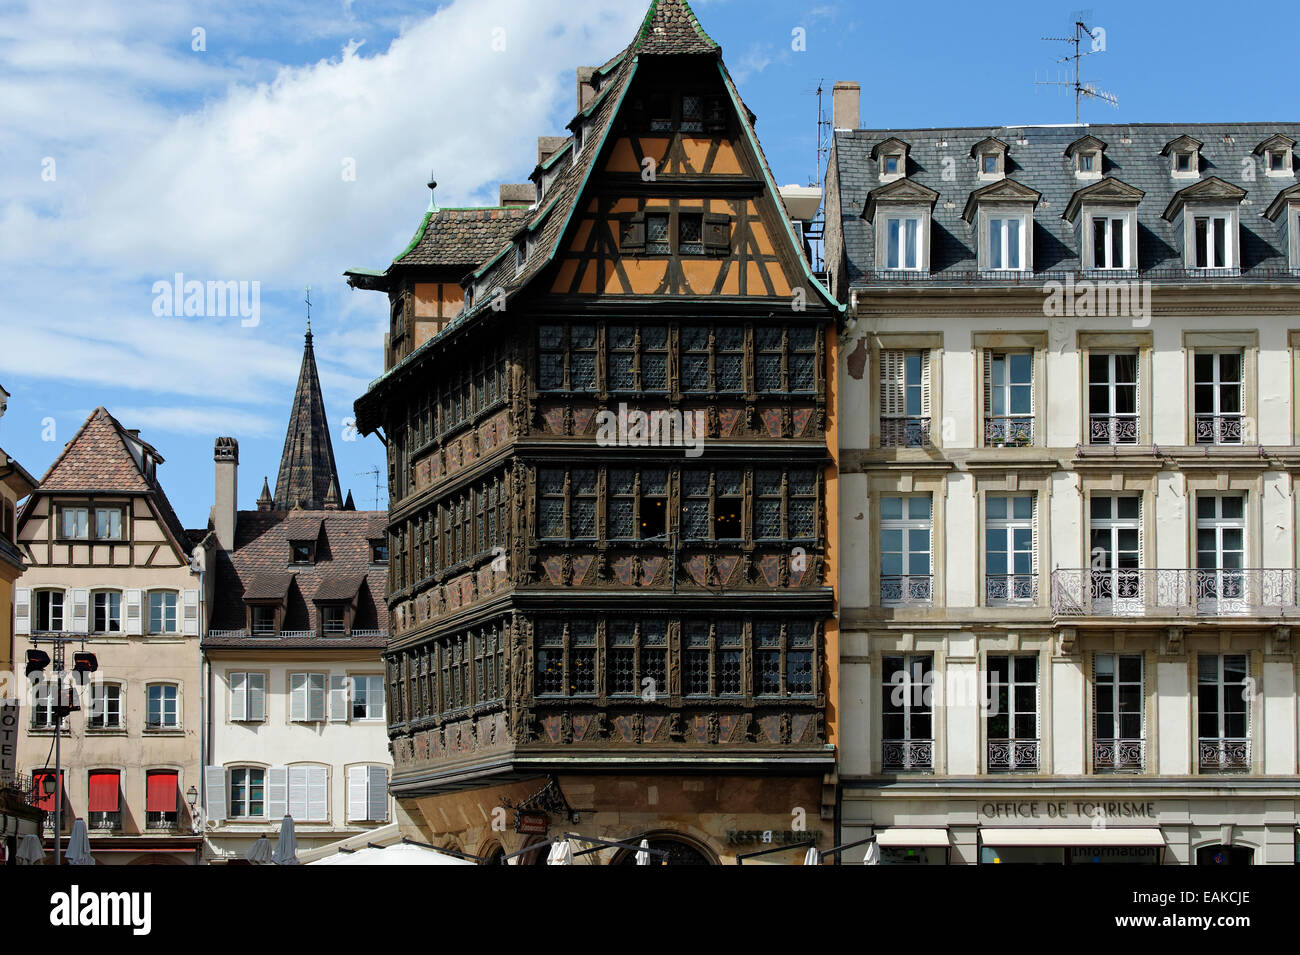 maison kammerzell building on place de la cathedrale square stock photo royalty free image. Black Bedroom Furniture Sets. Home Design Ideas